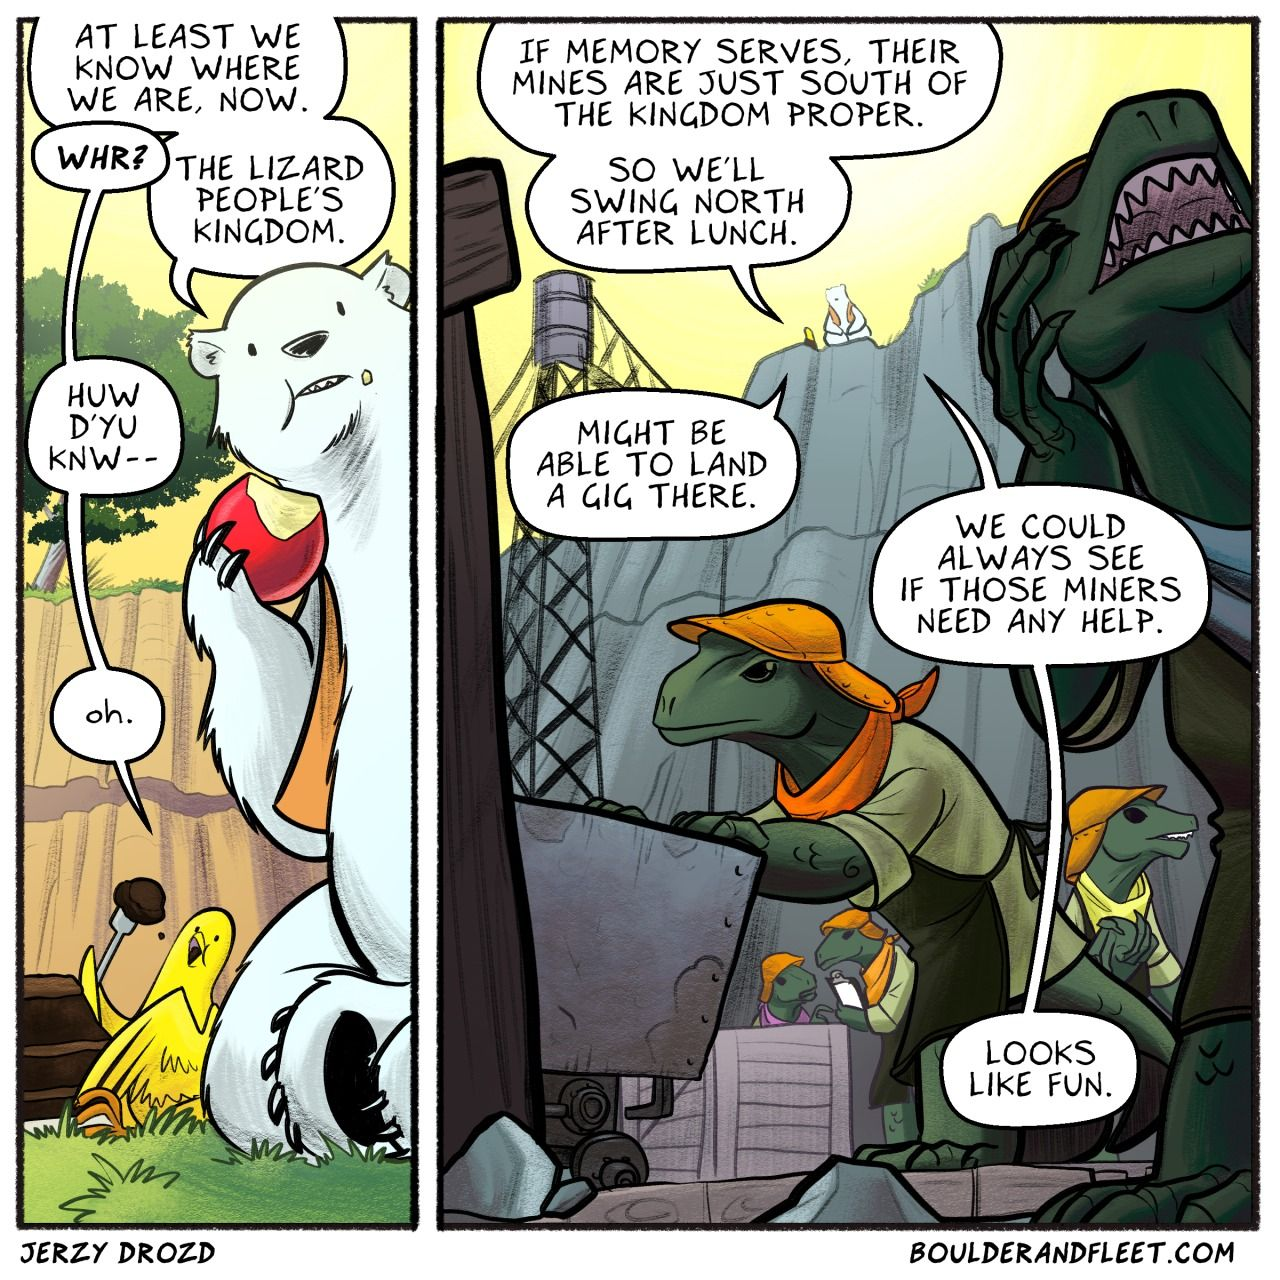 Mining for Trouble, Pg 6.  When I was a kid I only wanted to draw lizard people. Even the superhero characters I created were all lizard people. In one of my first comics the hero was a silver lizard man with wings who could summon warriors representing the chemical elements. In 2005 I recreated that comic with cartoonist Sara Turner.  So yeah, I'm excited to create a Boulder and Fleet story that takes place in a kingdom of lizard people.